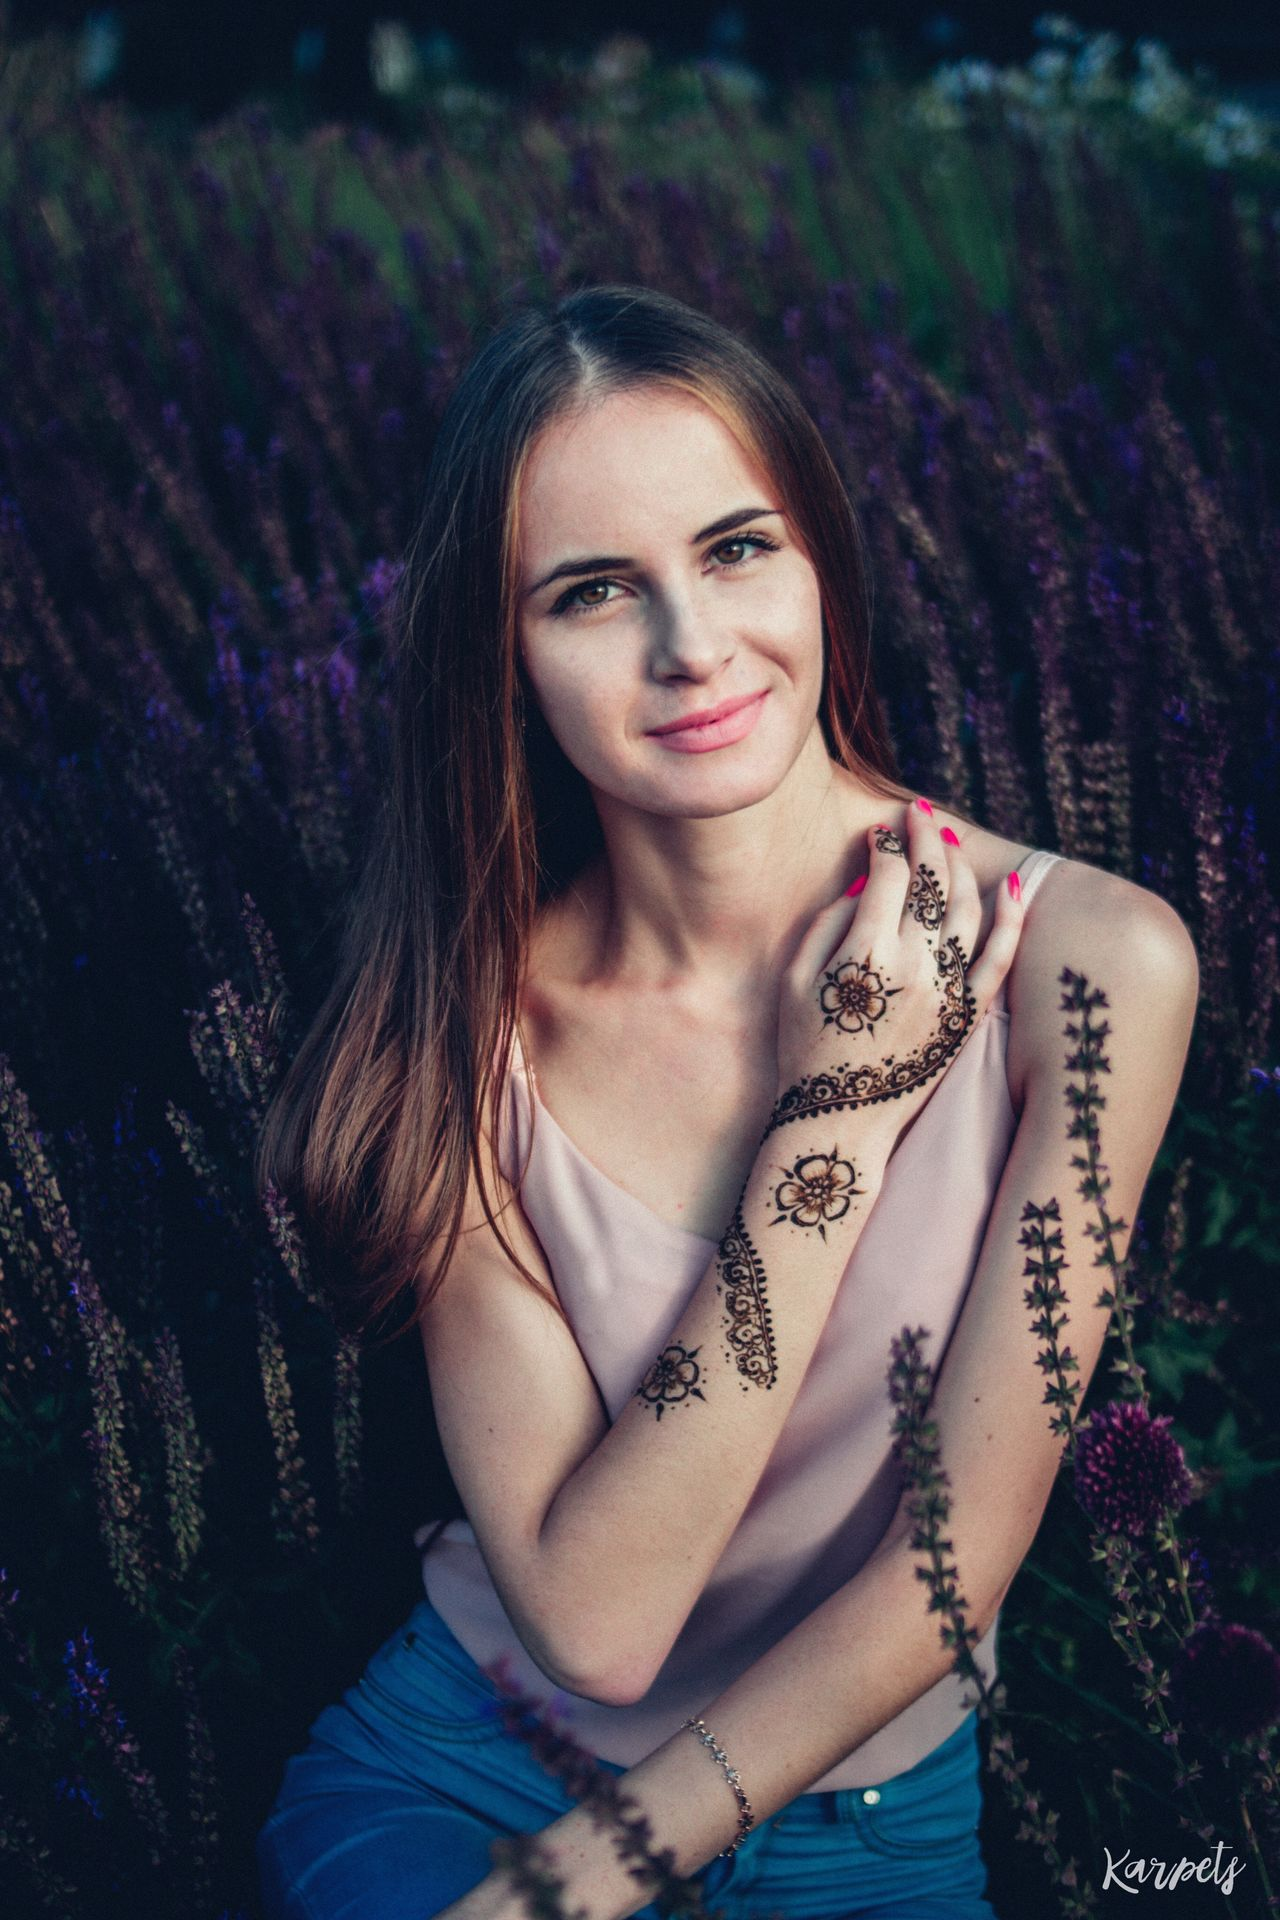 Hands Mehendi Beautiful Nature Karpetsphoto EyeEm Best Shots Flowers Moscow Color Portrait Summer EyeEmBestEdits Photography Russian Girl Portrait Russia